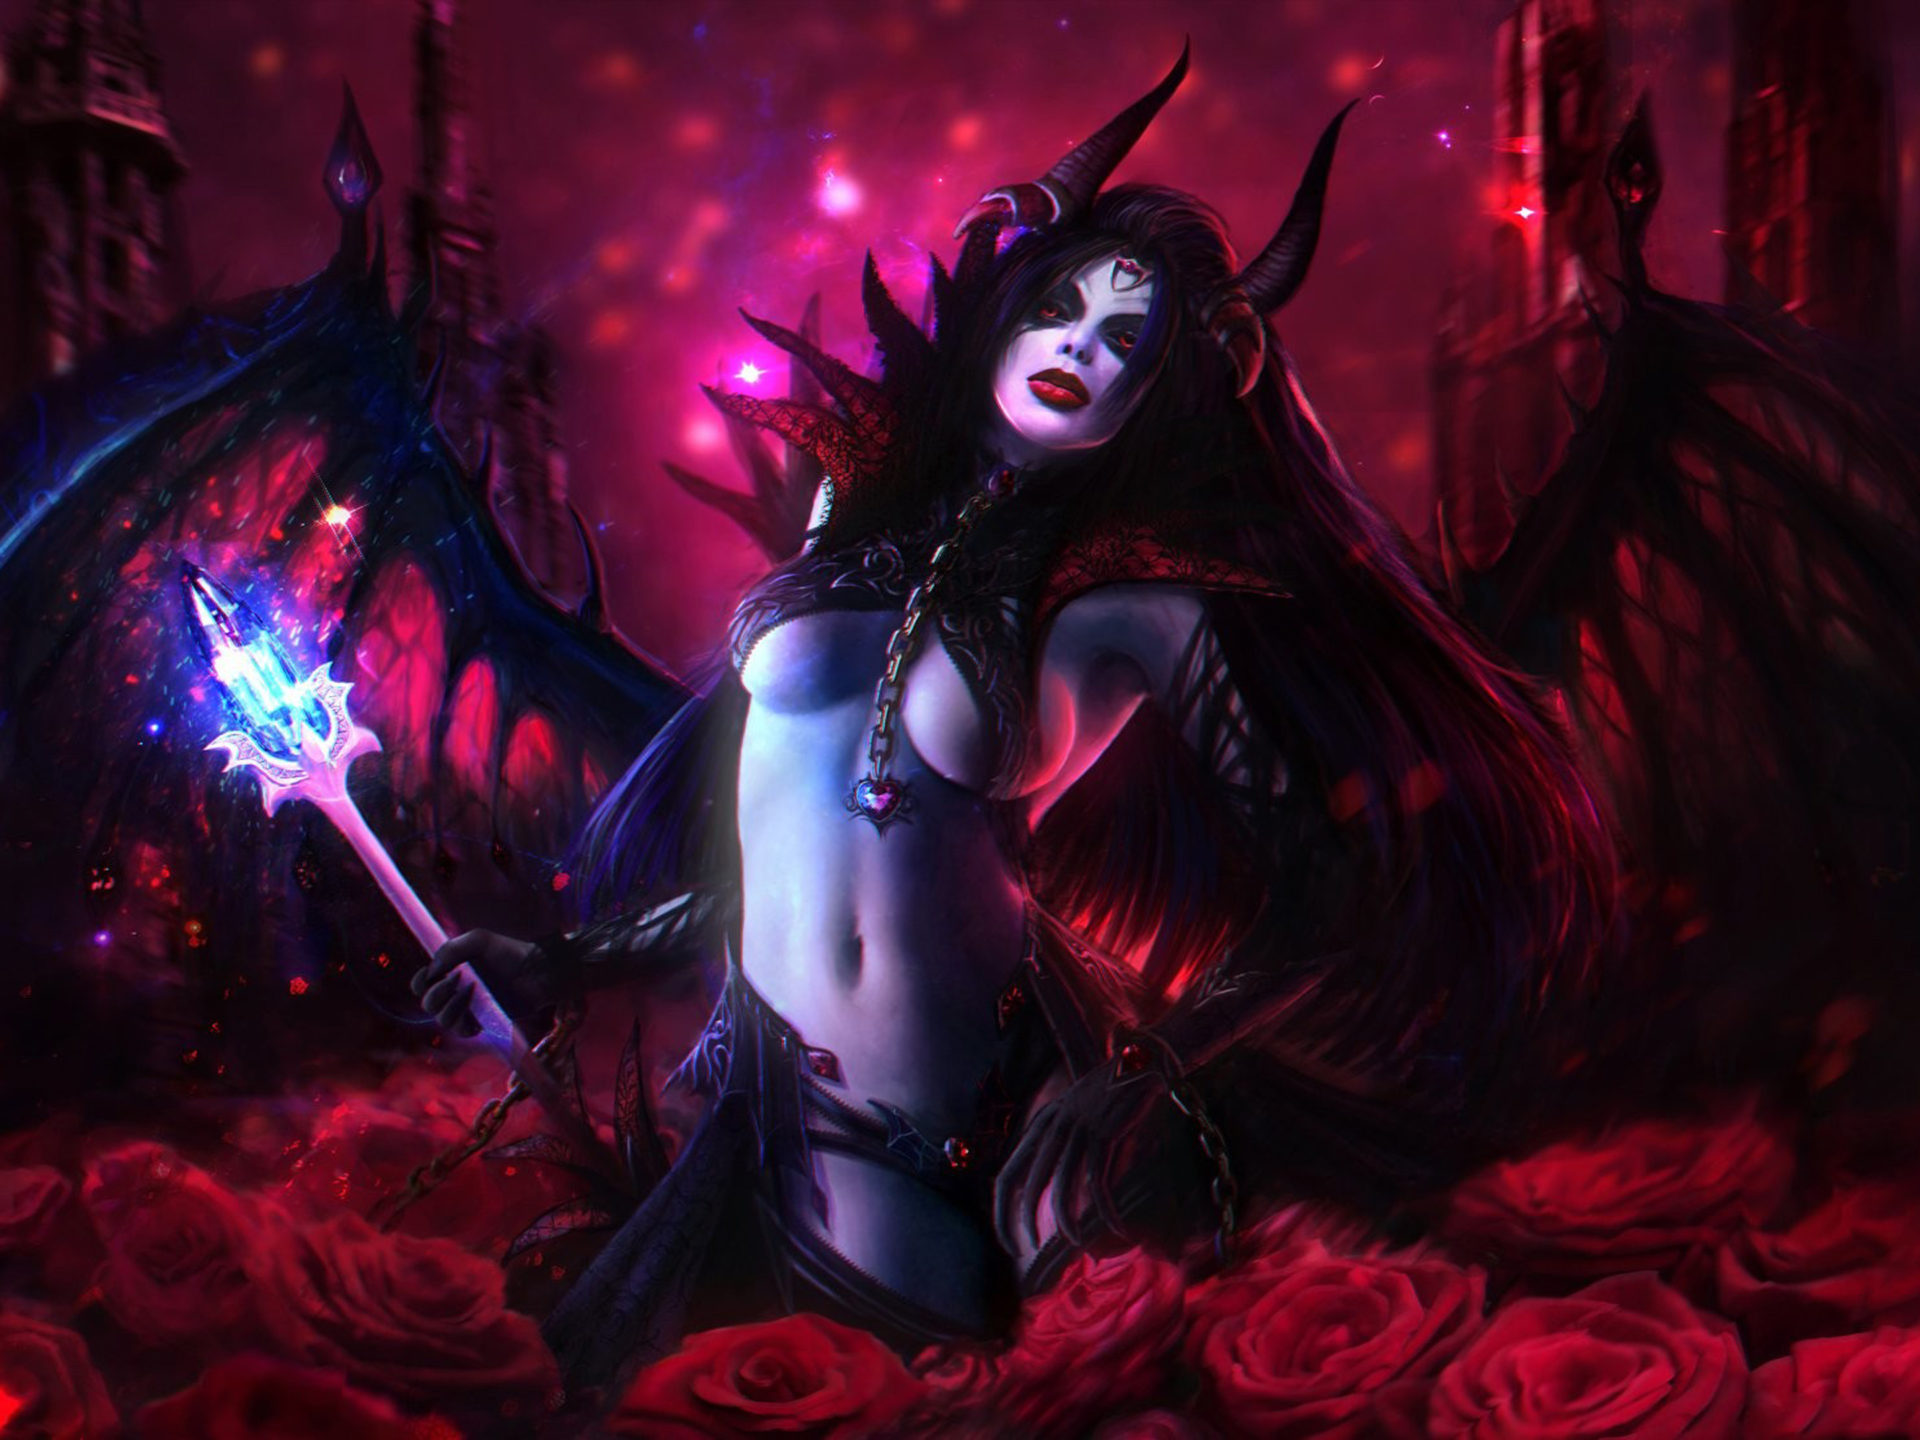 Girl With Bow Wallpaper Queen Of Pain Dota 2 Heroes Video Game Beautiful Girls